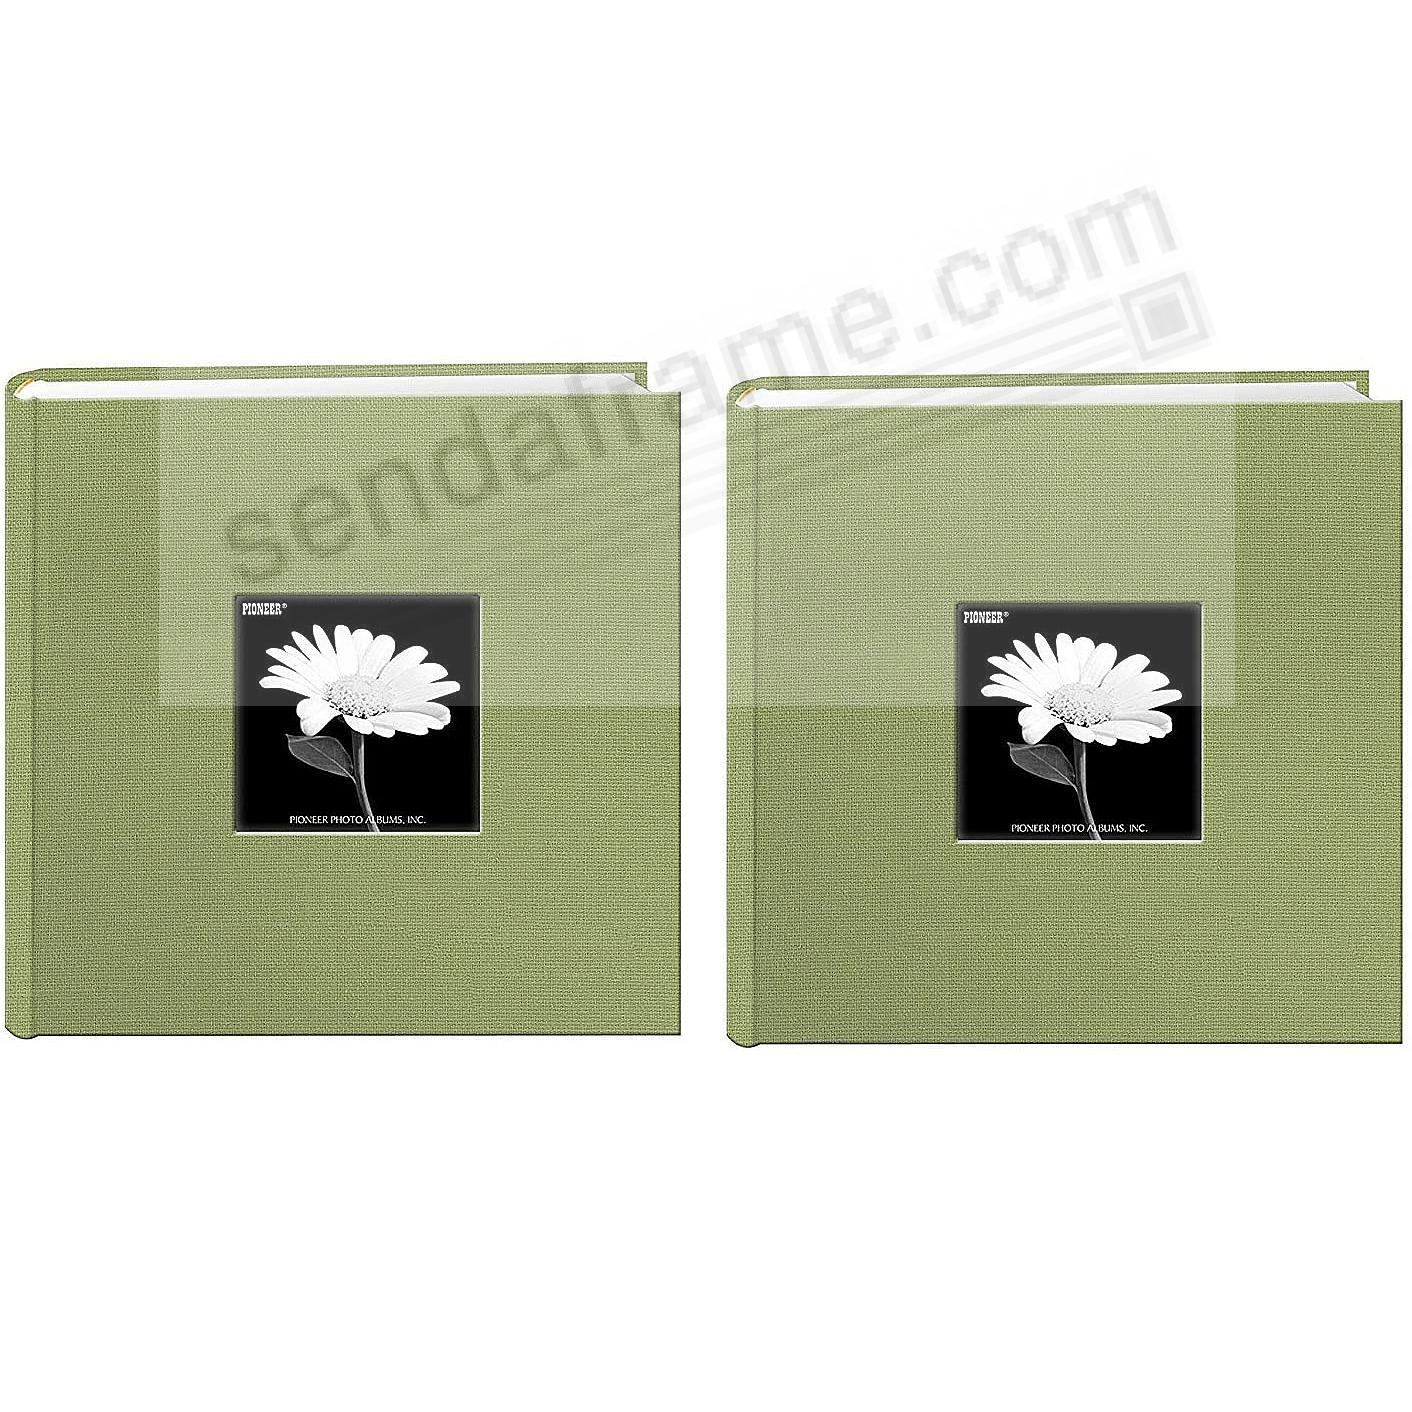 Sage-Green cloth 2-up frame photo album by Pioneer® - 2pc Bundle